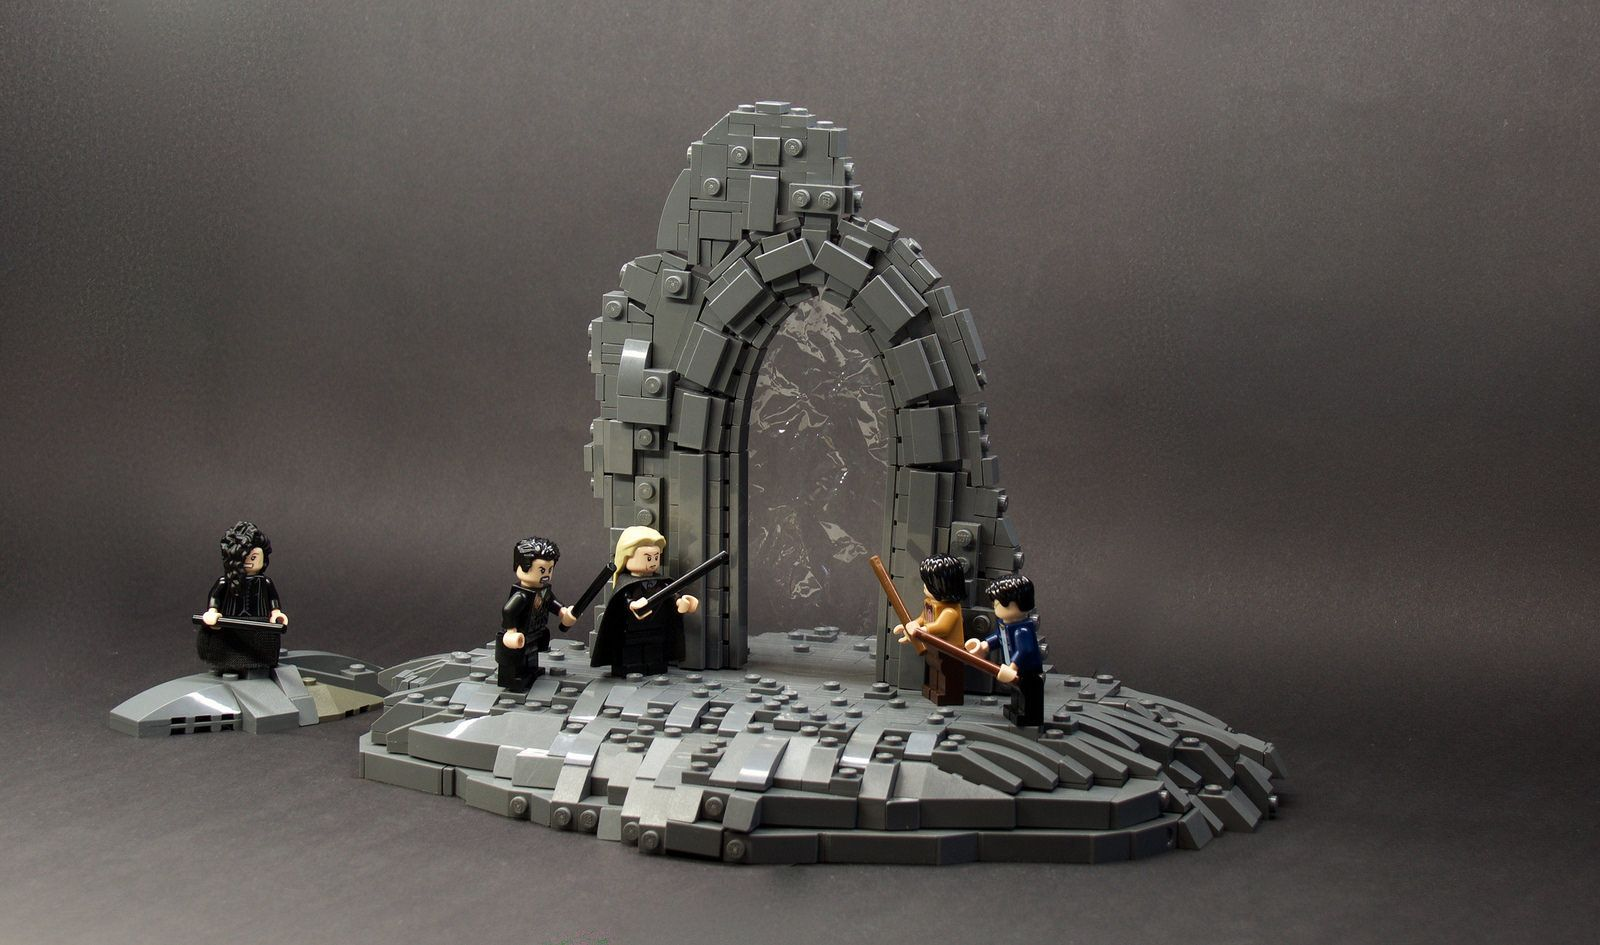 Harry Potter Department Of Mysteries Lego Harry Potter Moc Lego Harry Potter Lego